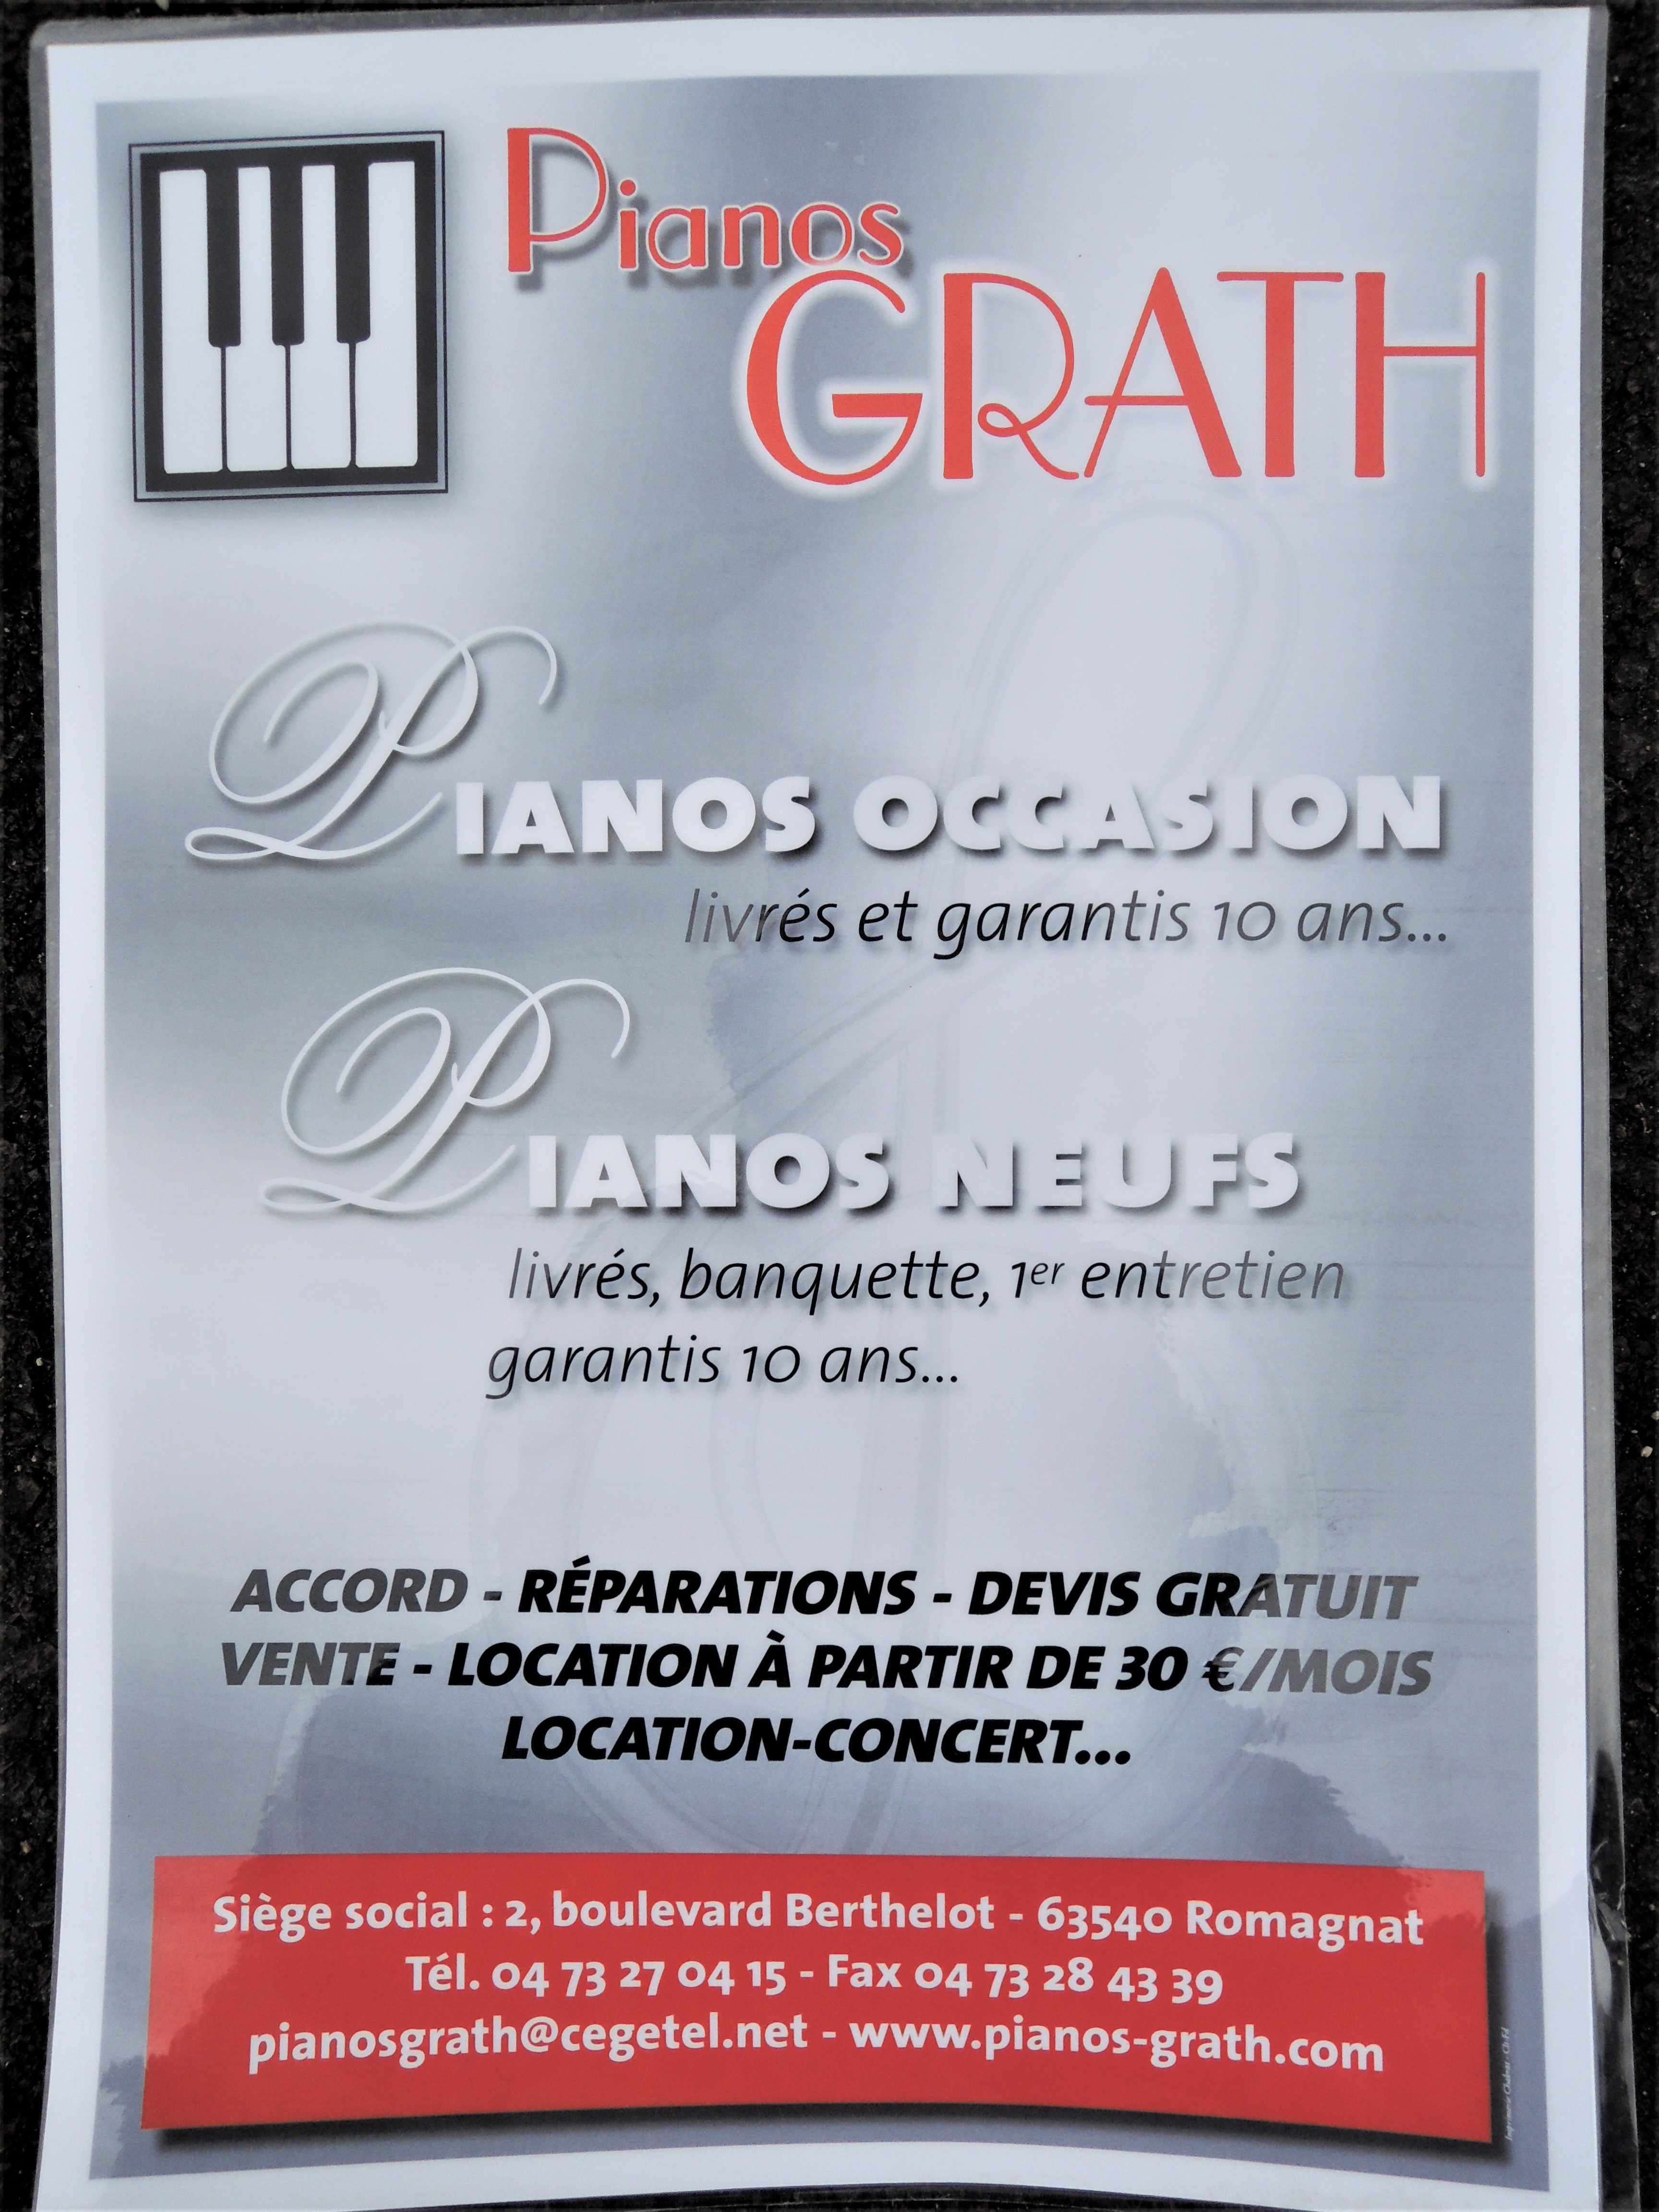 logo Piano Grath, à partir d'une photo d'affiche